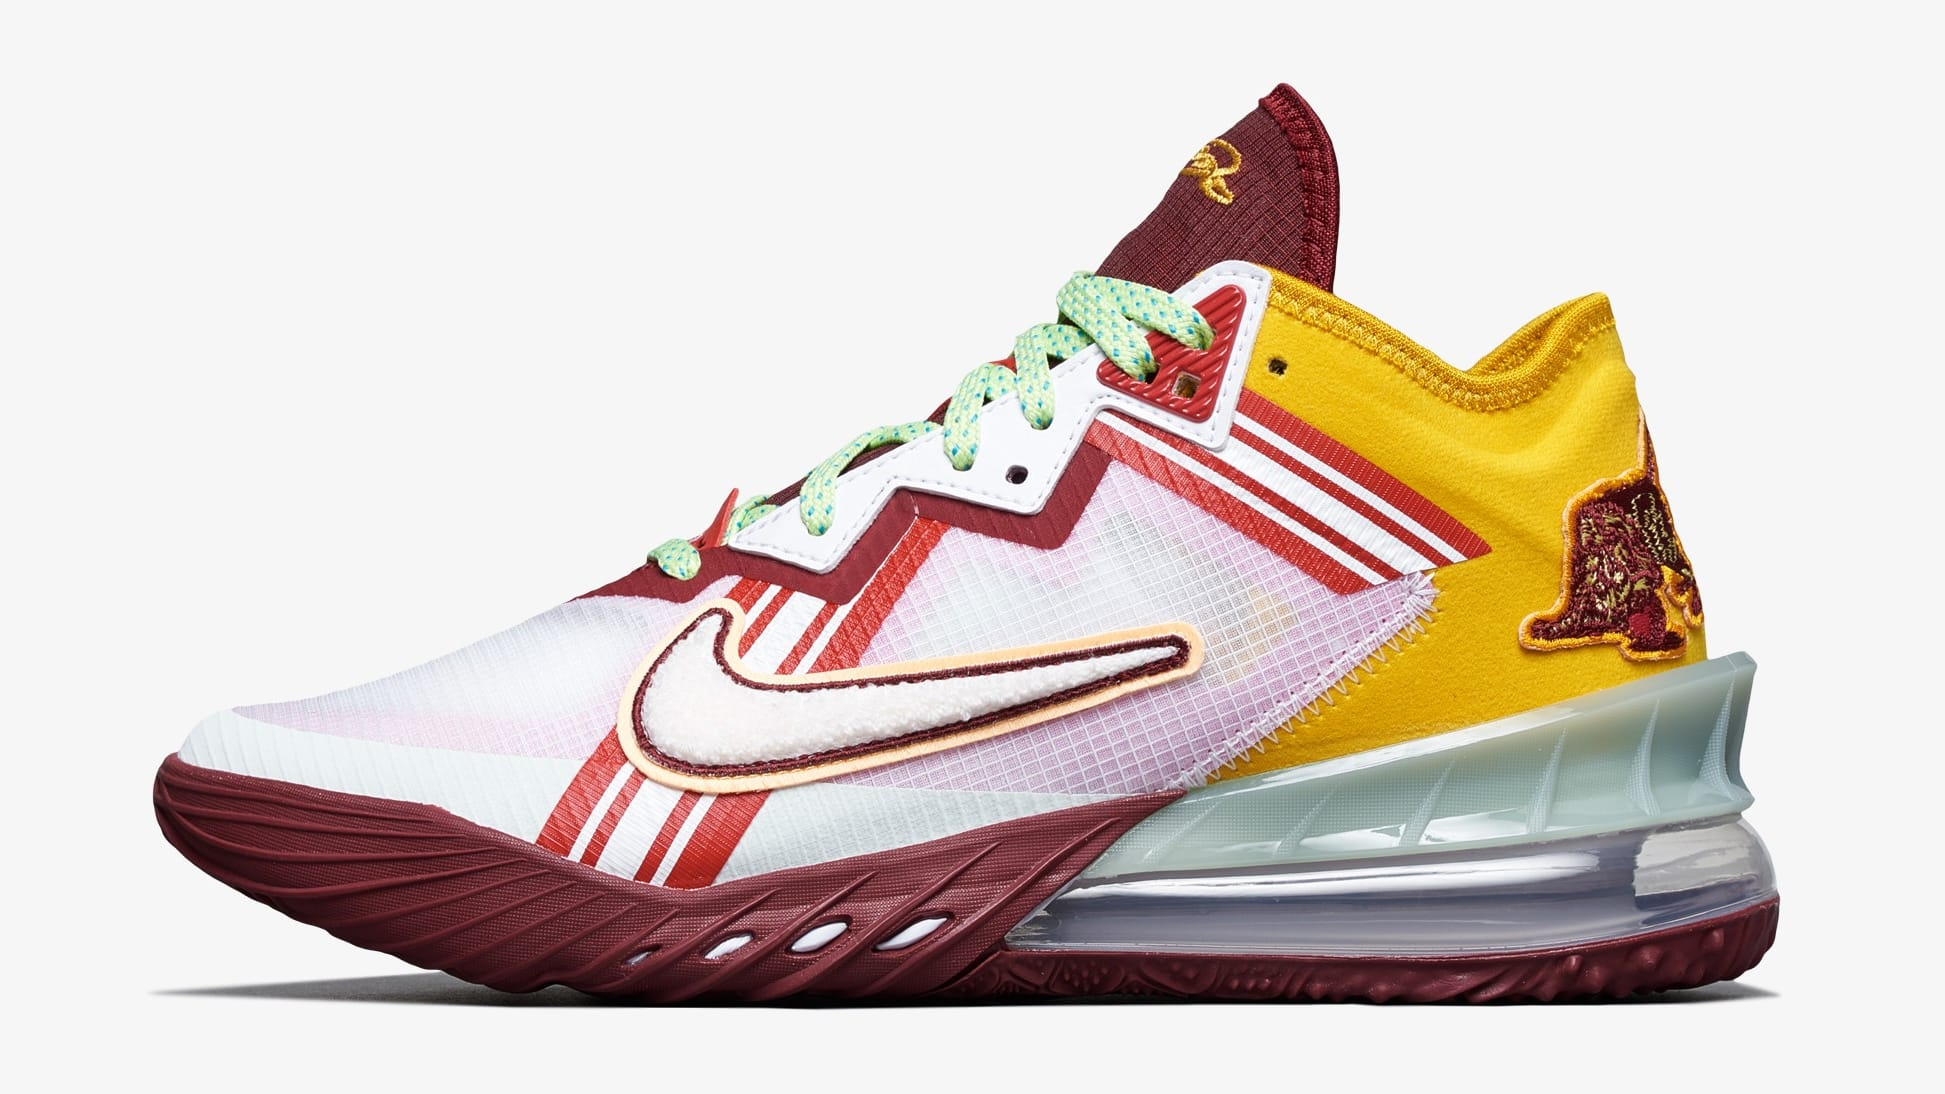 Mimi Plange x Nike LeBron 18 Low 'Higher Learning' CV7562-102 Lateral